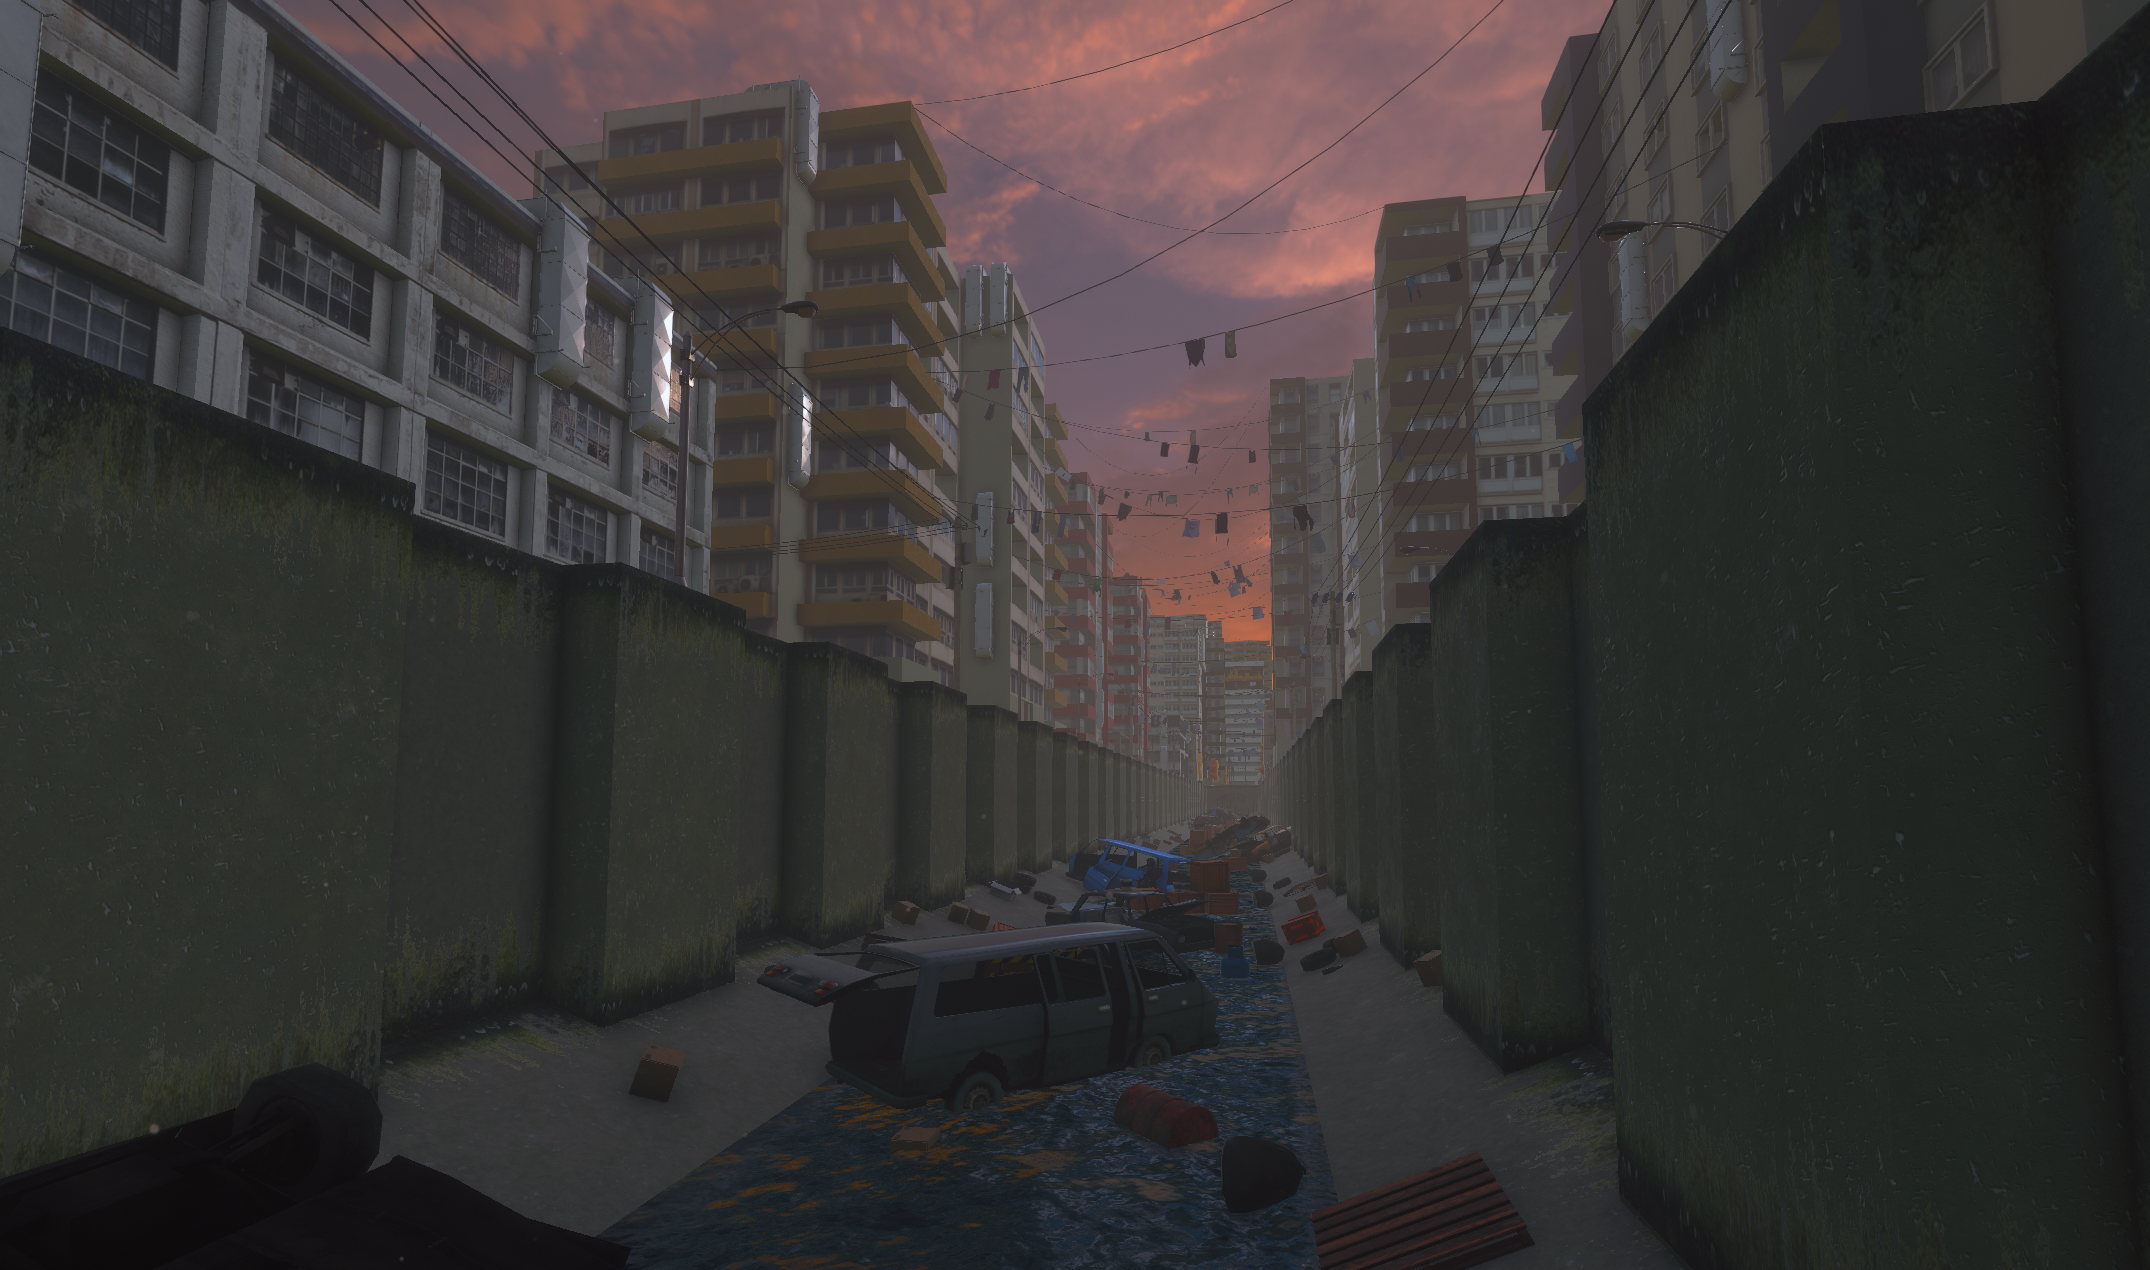 Evening sunset in the city level.